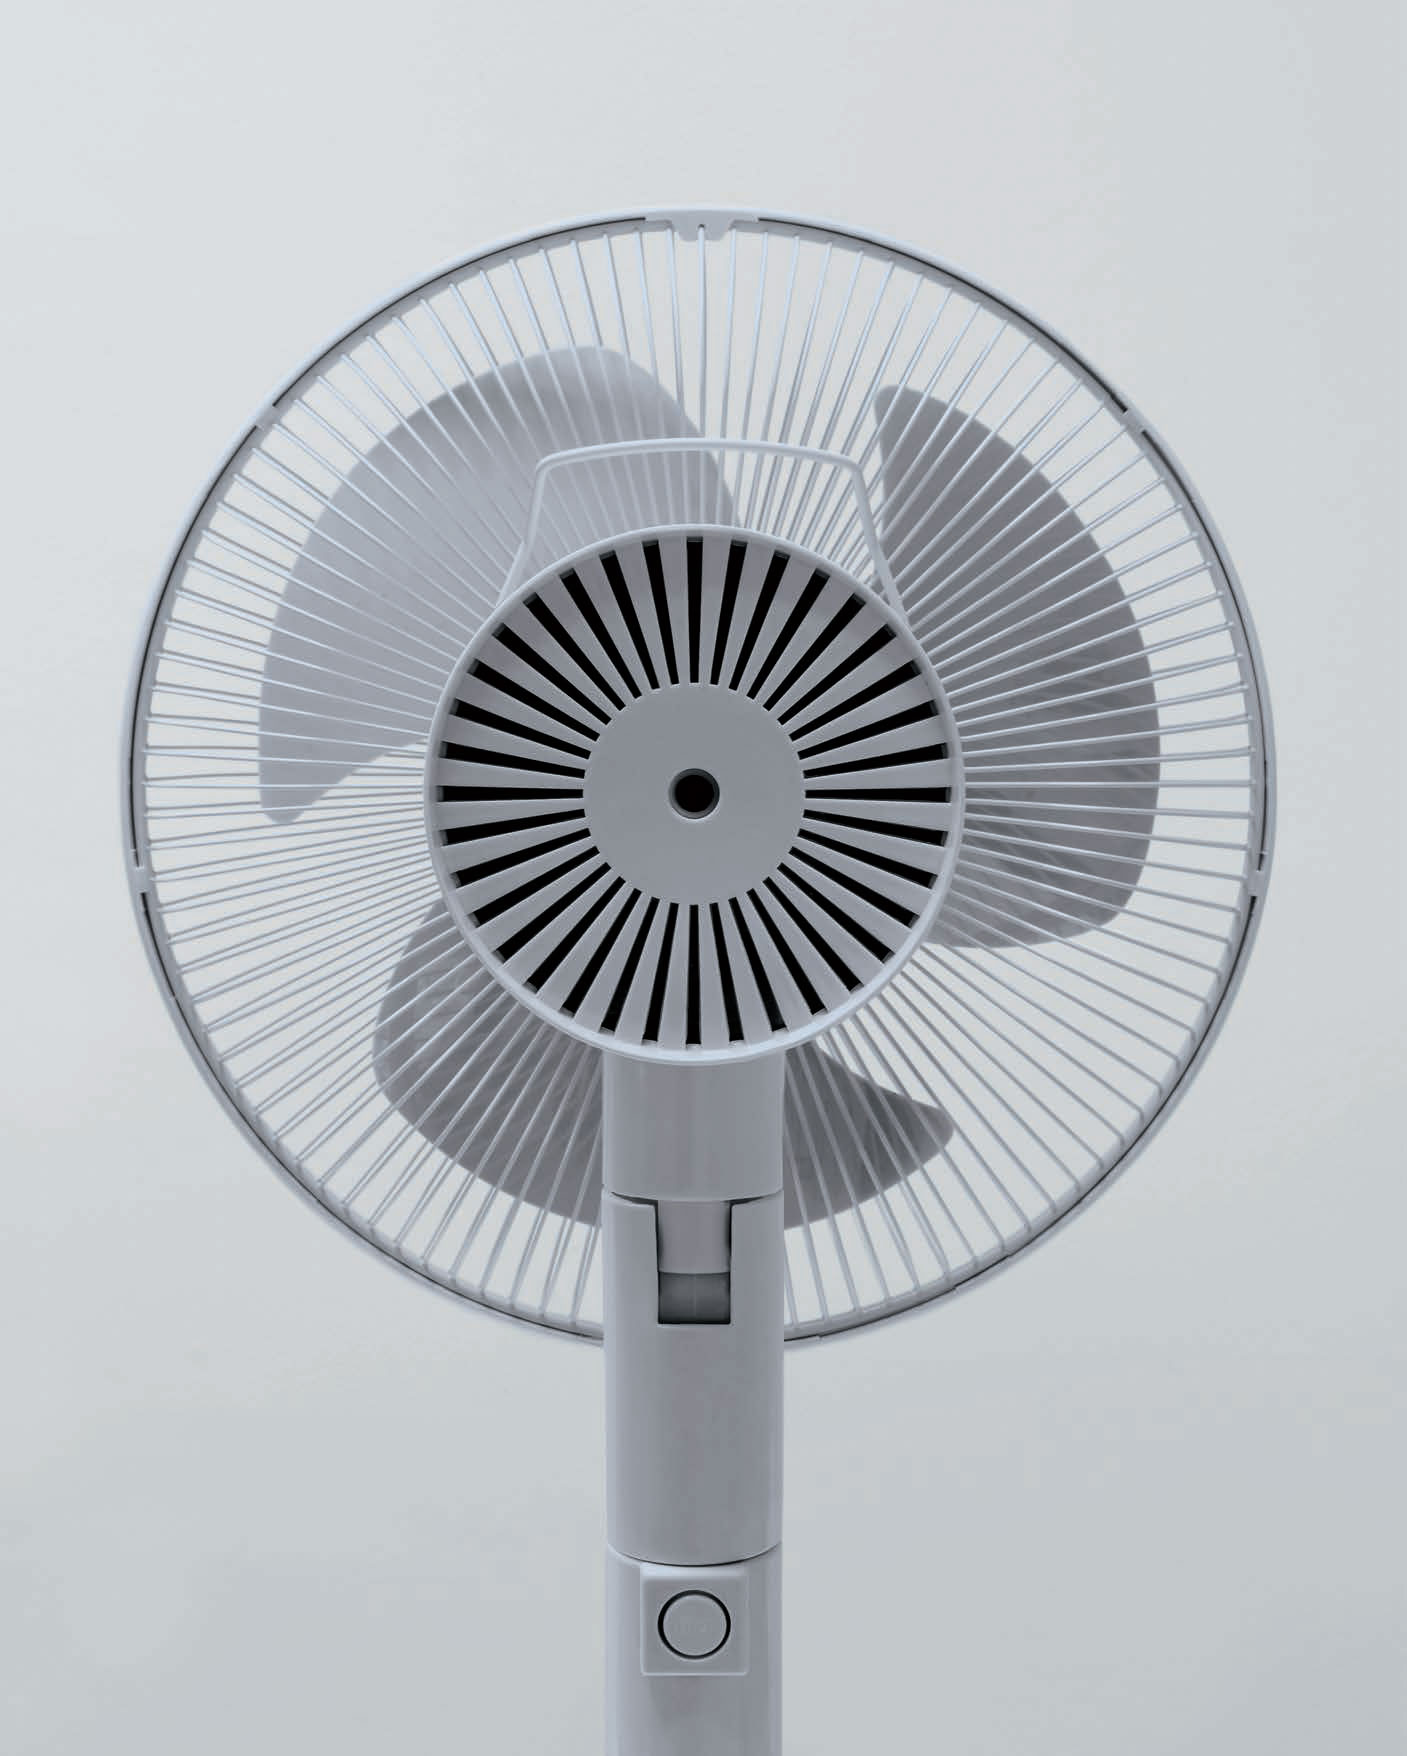 Fan, 2006, by Industrial Facility for Muji. As reproduced in Industrial Facility